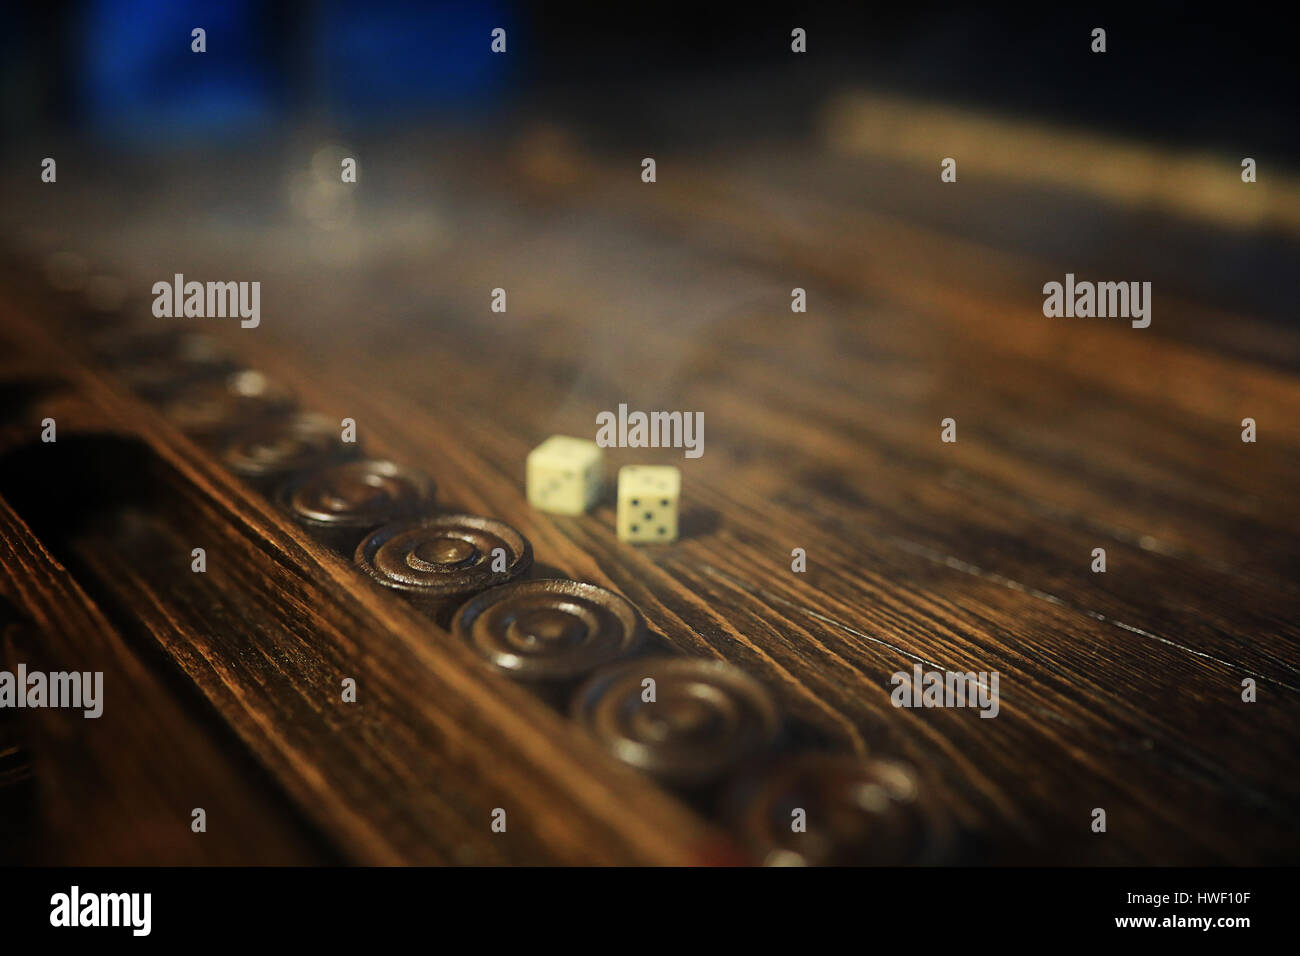 Gambling dice backgammon ontario casino employment